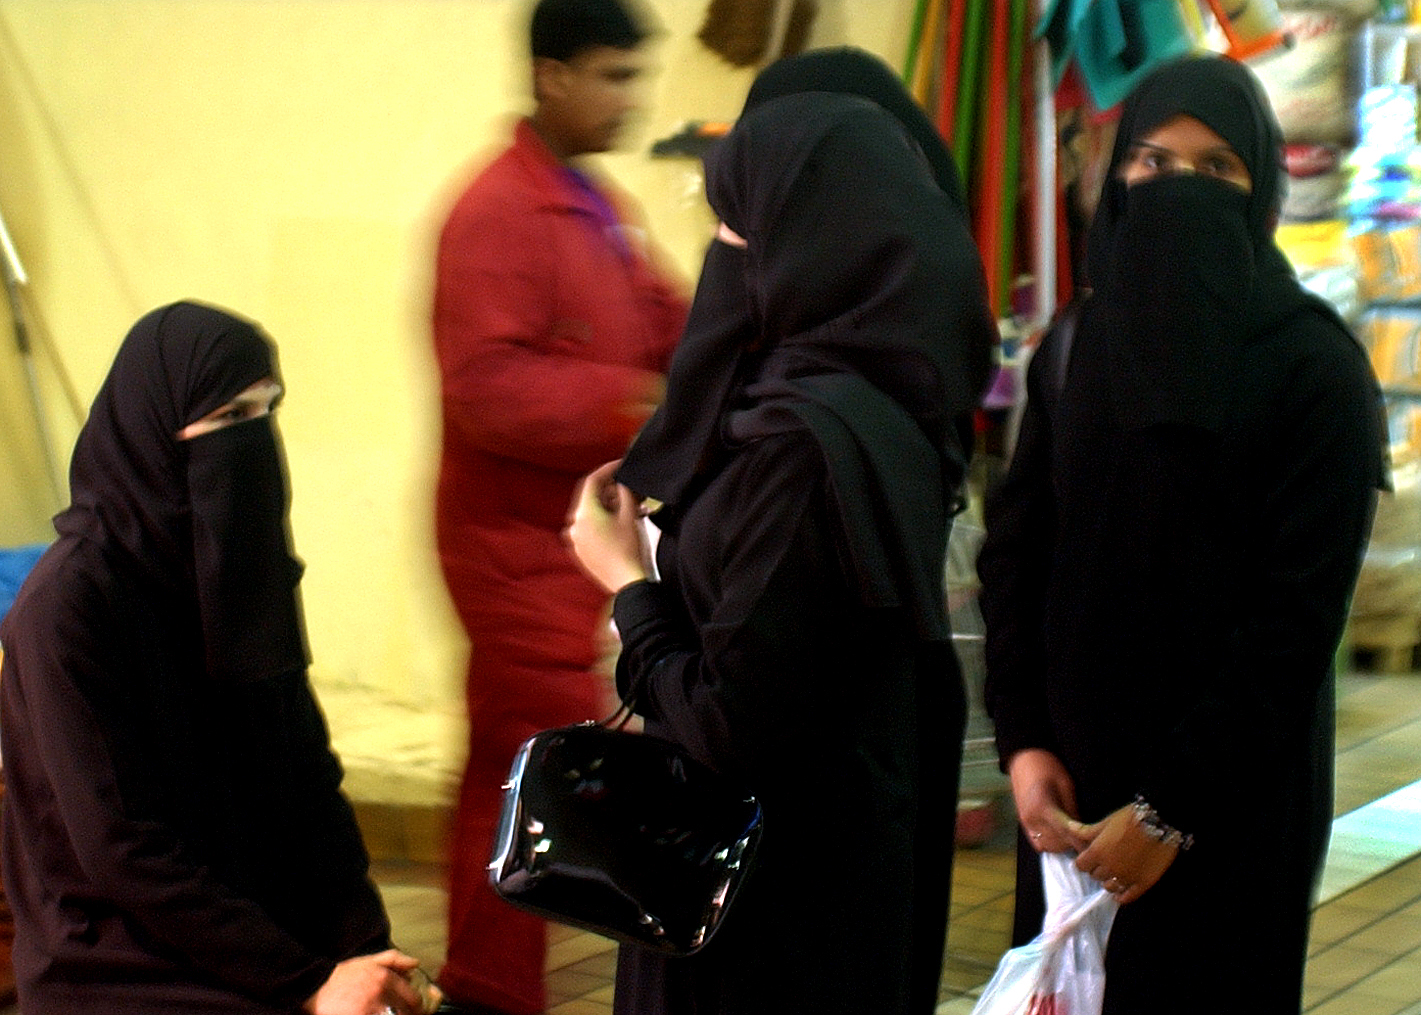 Muslim Women in Kuwait City